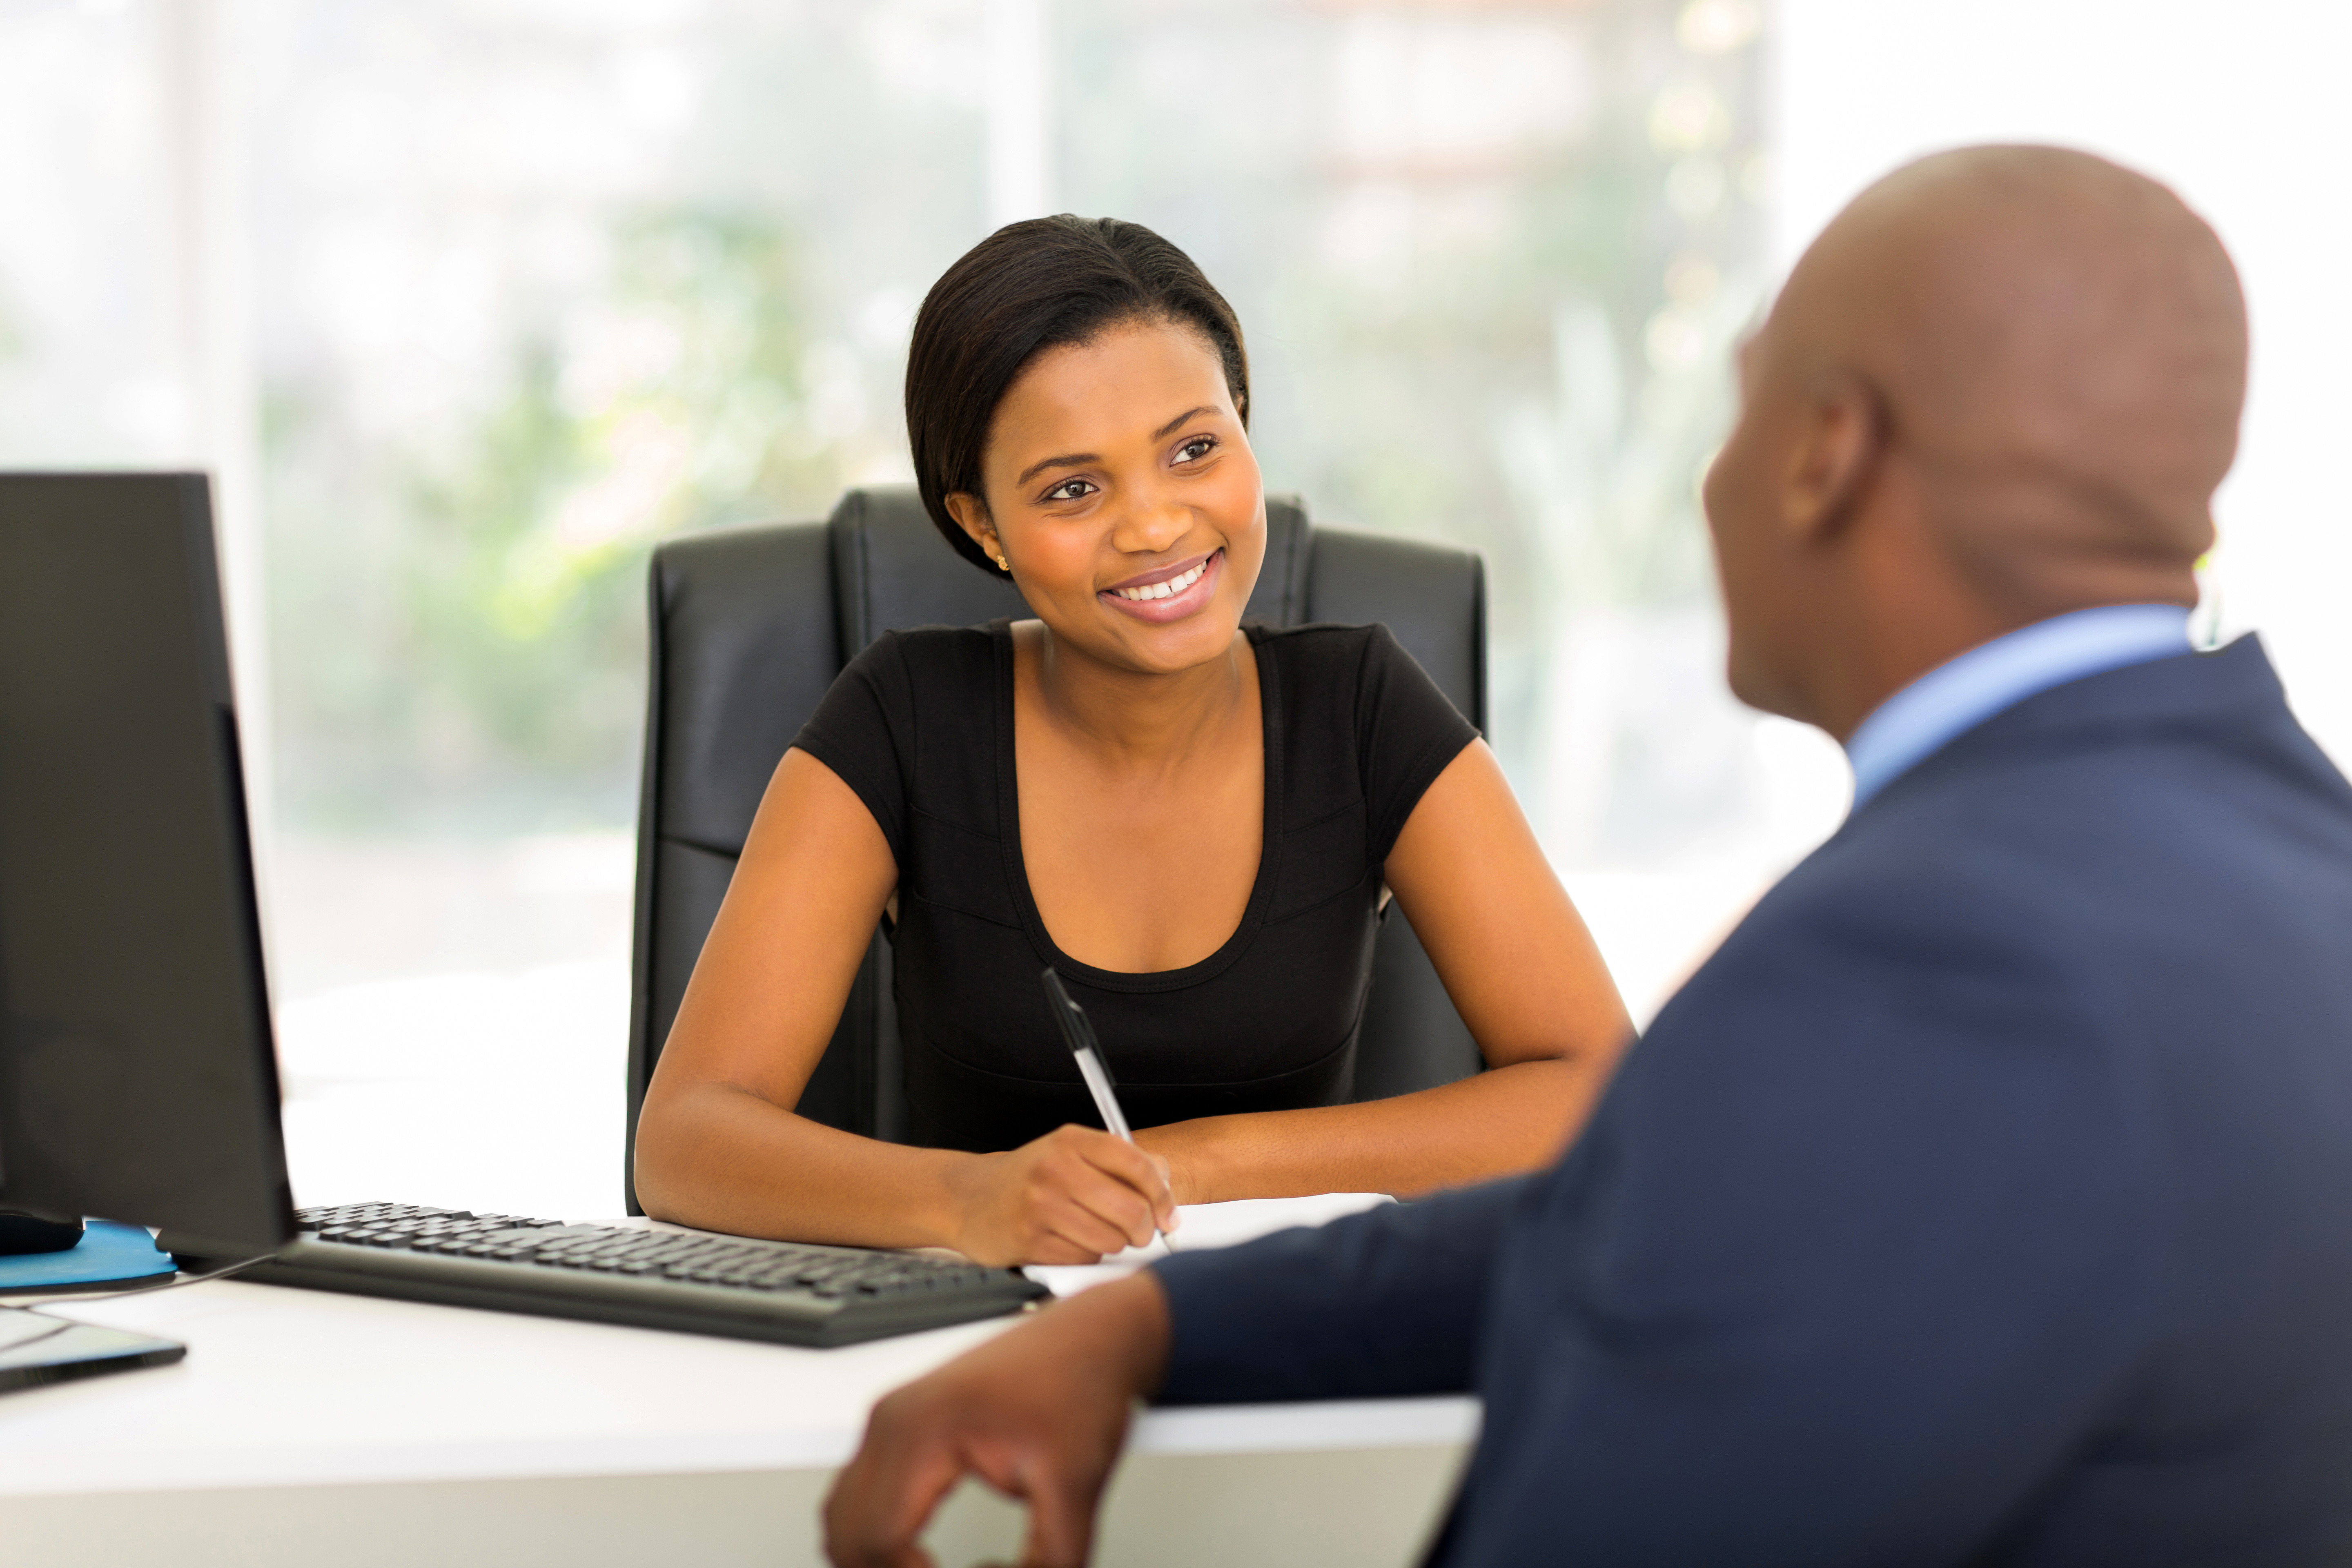 How to ask for a raise from your employer